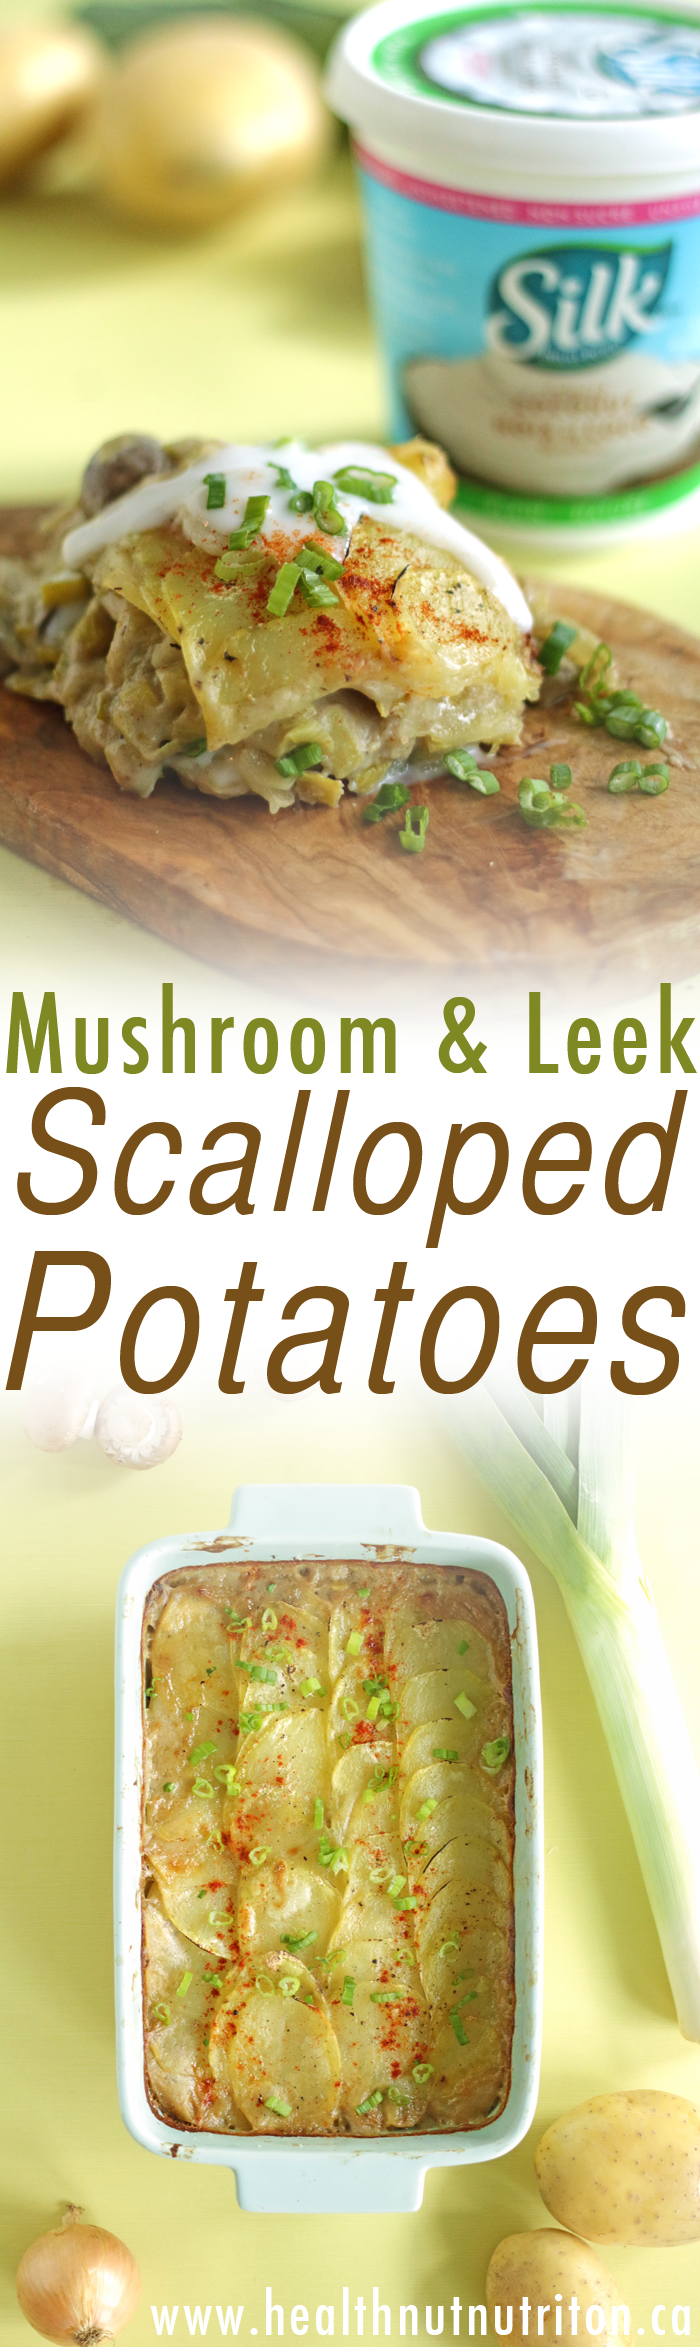 A creamy, dairy-free mushroom and leek twist on your classic scalloped potatoes casserole, perfect for your next potluck or holiday dinner.